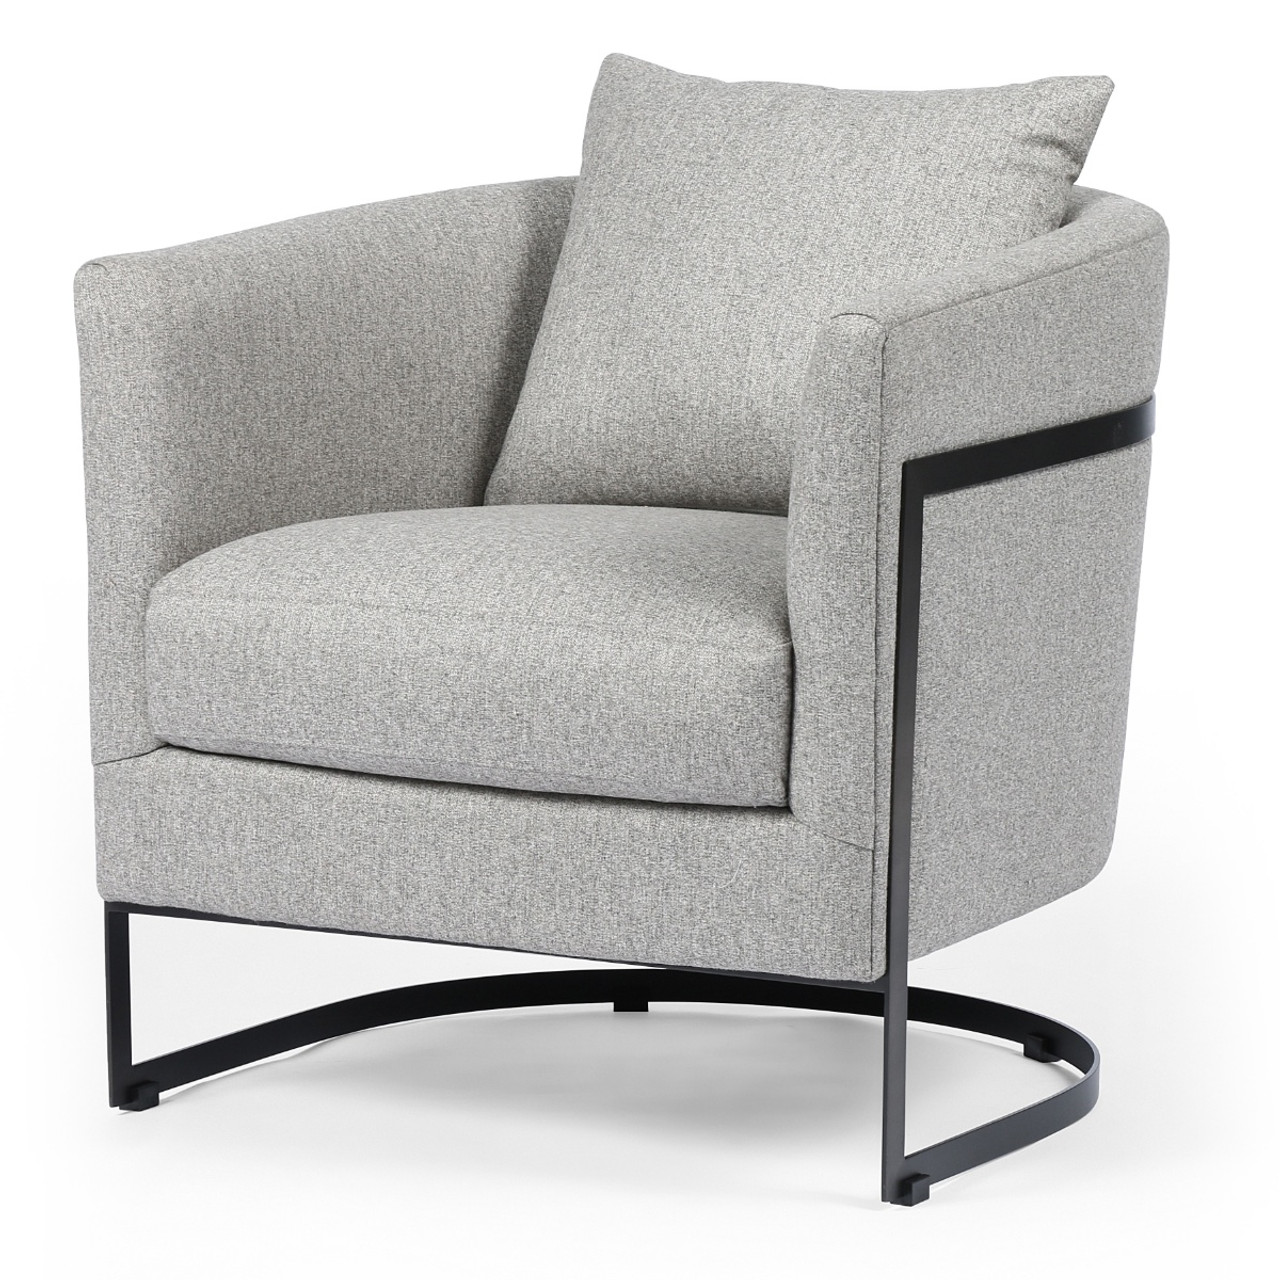 Surprising Liam Modern Grey Curved Club Chair Gamerscity Chair Design For Home Gamerscityorg